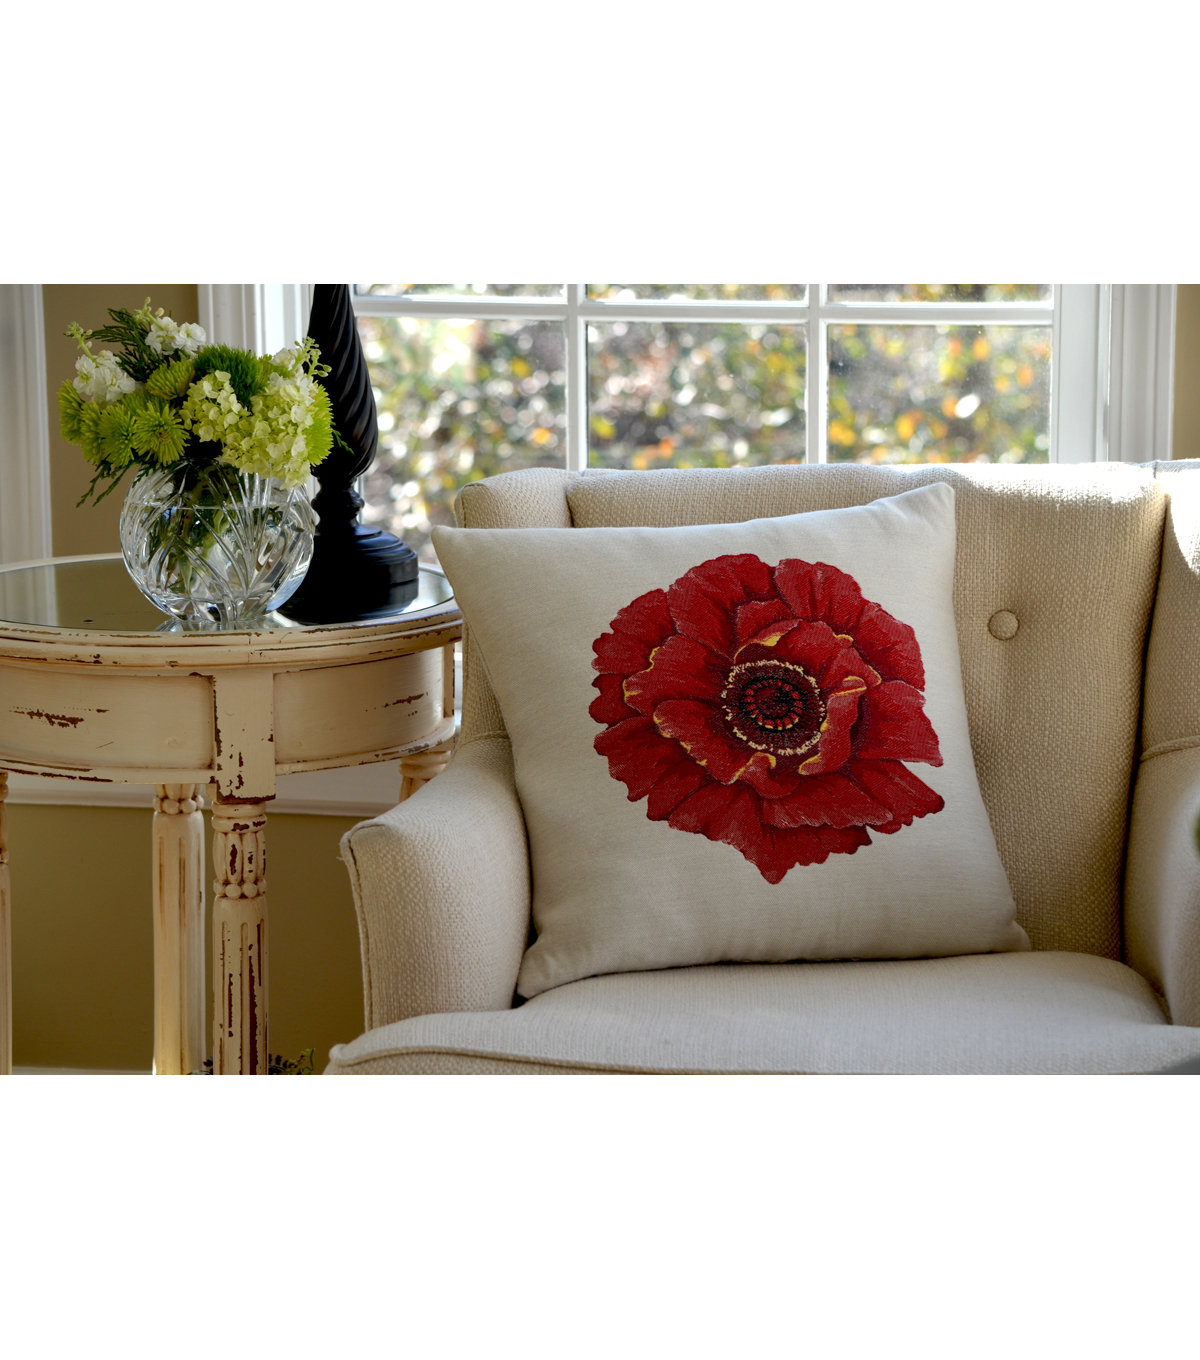 Square By Design Pillow Cover | JOANN